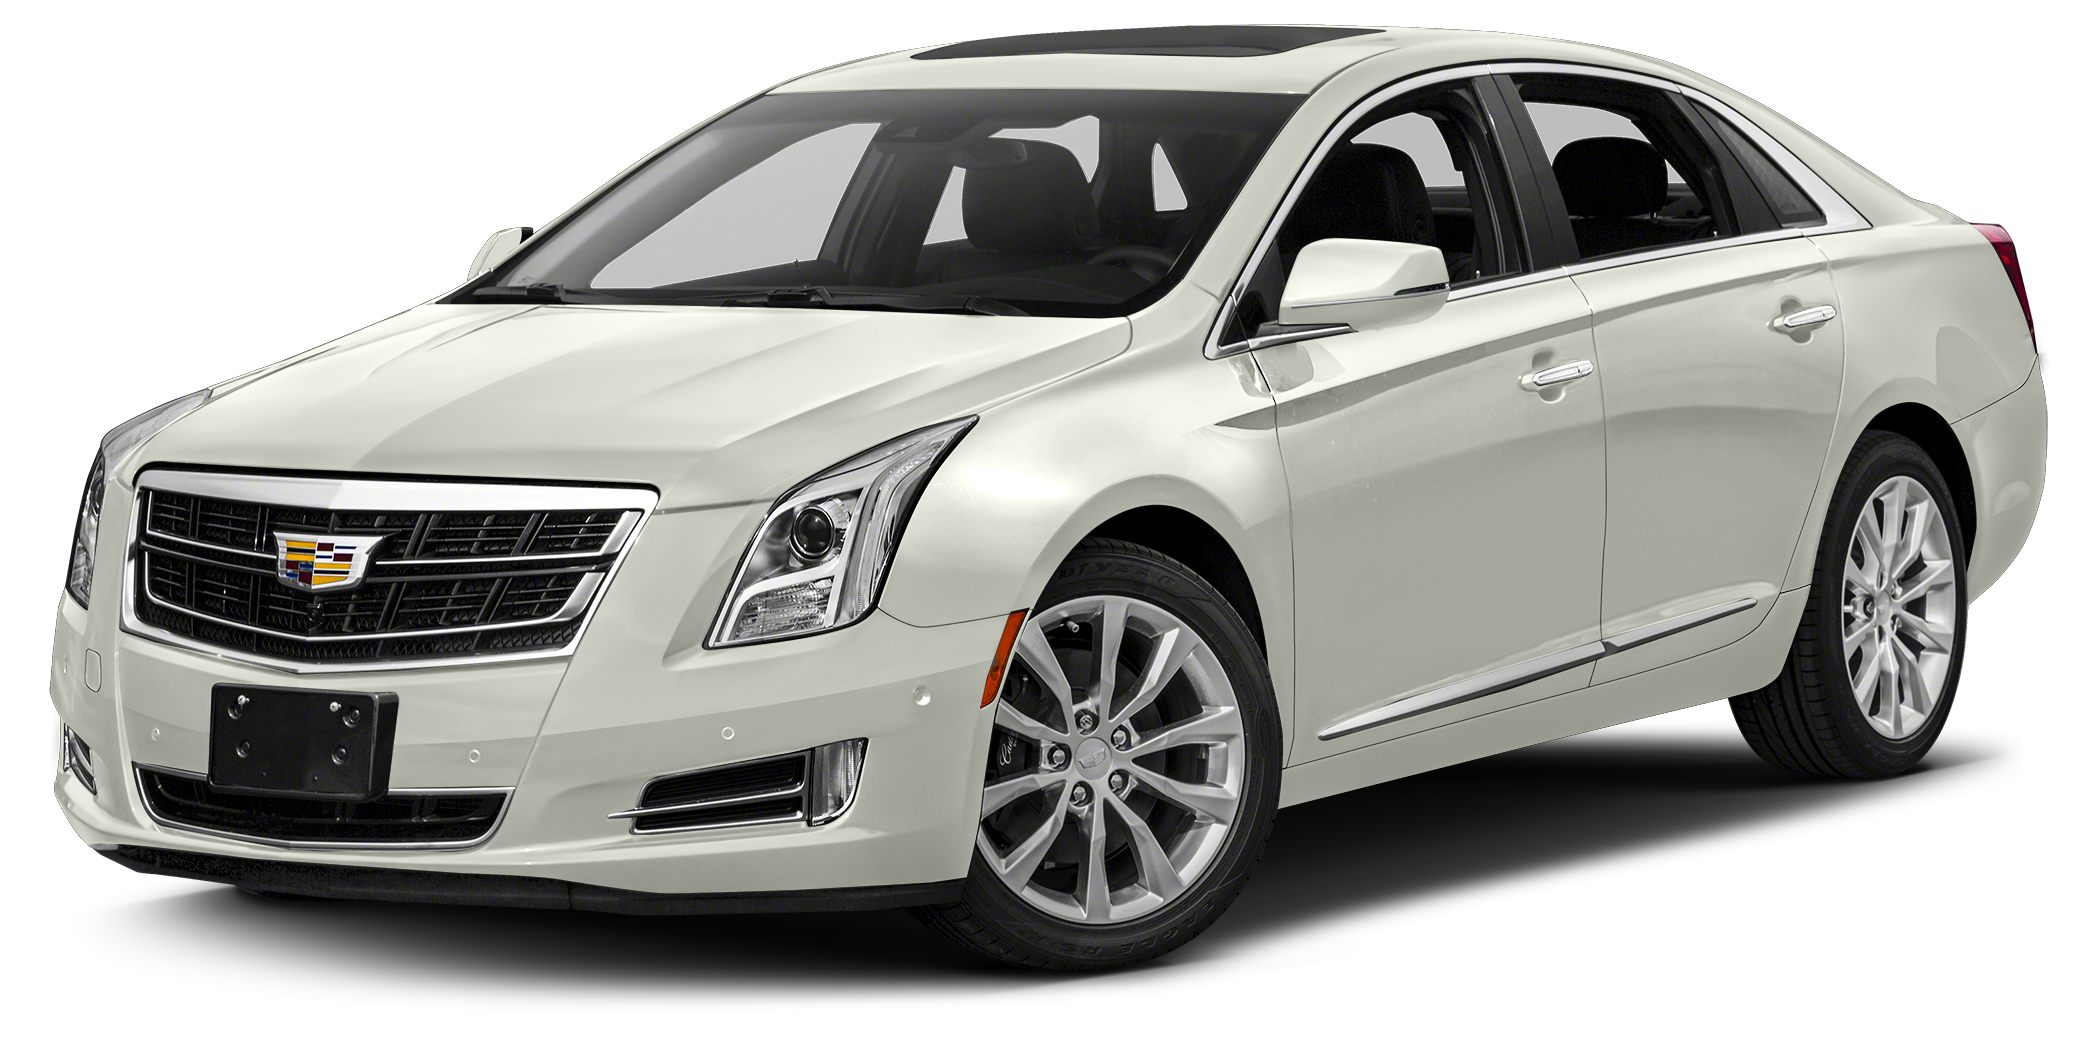 2017 Cadillac XTS Luxury Miles 0Color Crystal White Tricoat Stock 6708 VIN 2G61M5S31H9124201